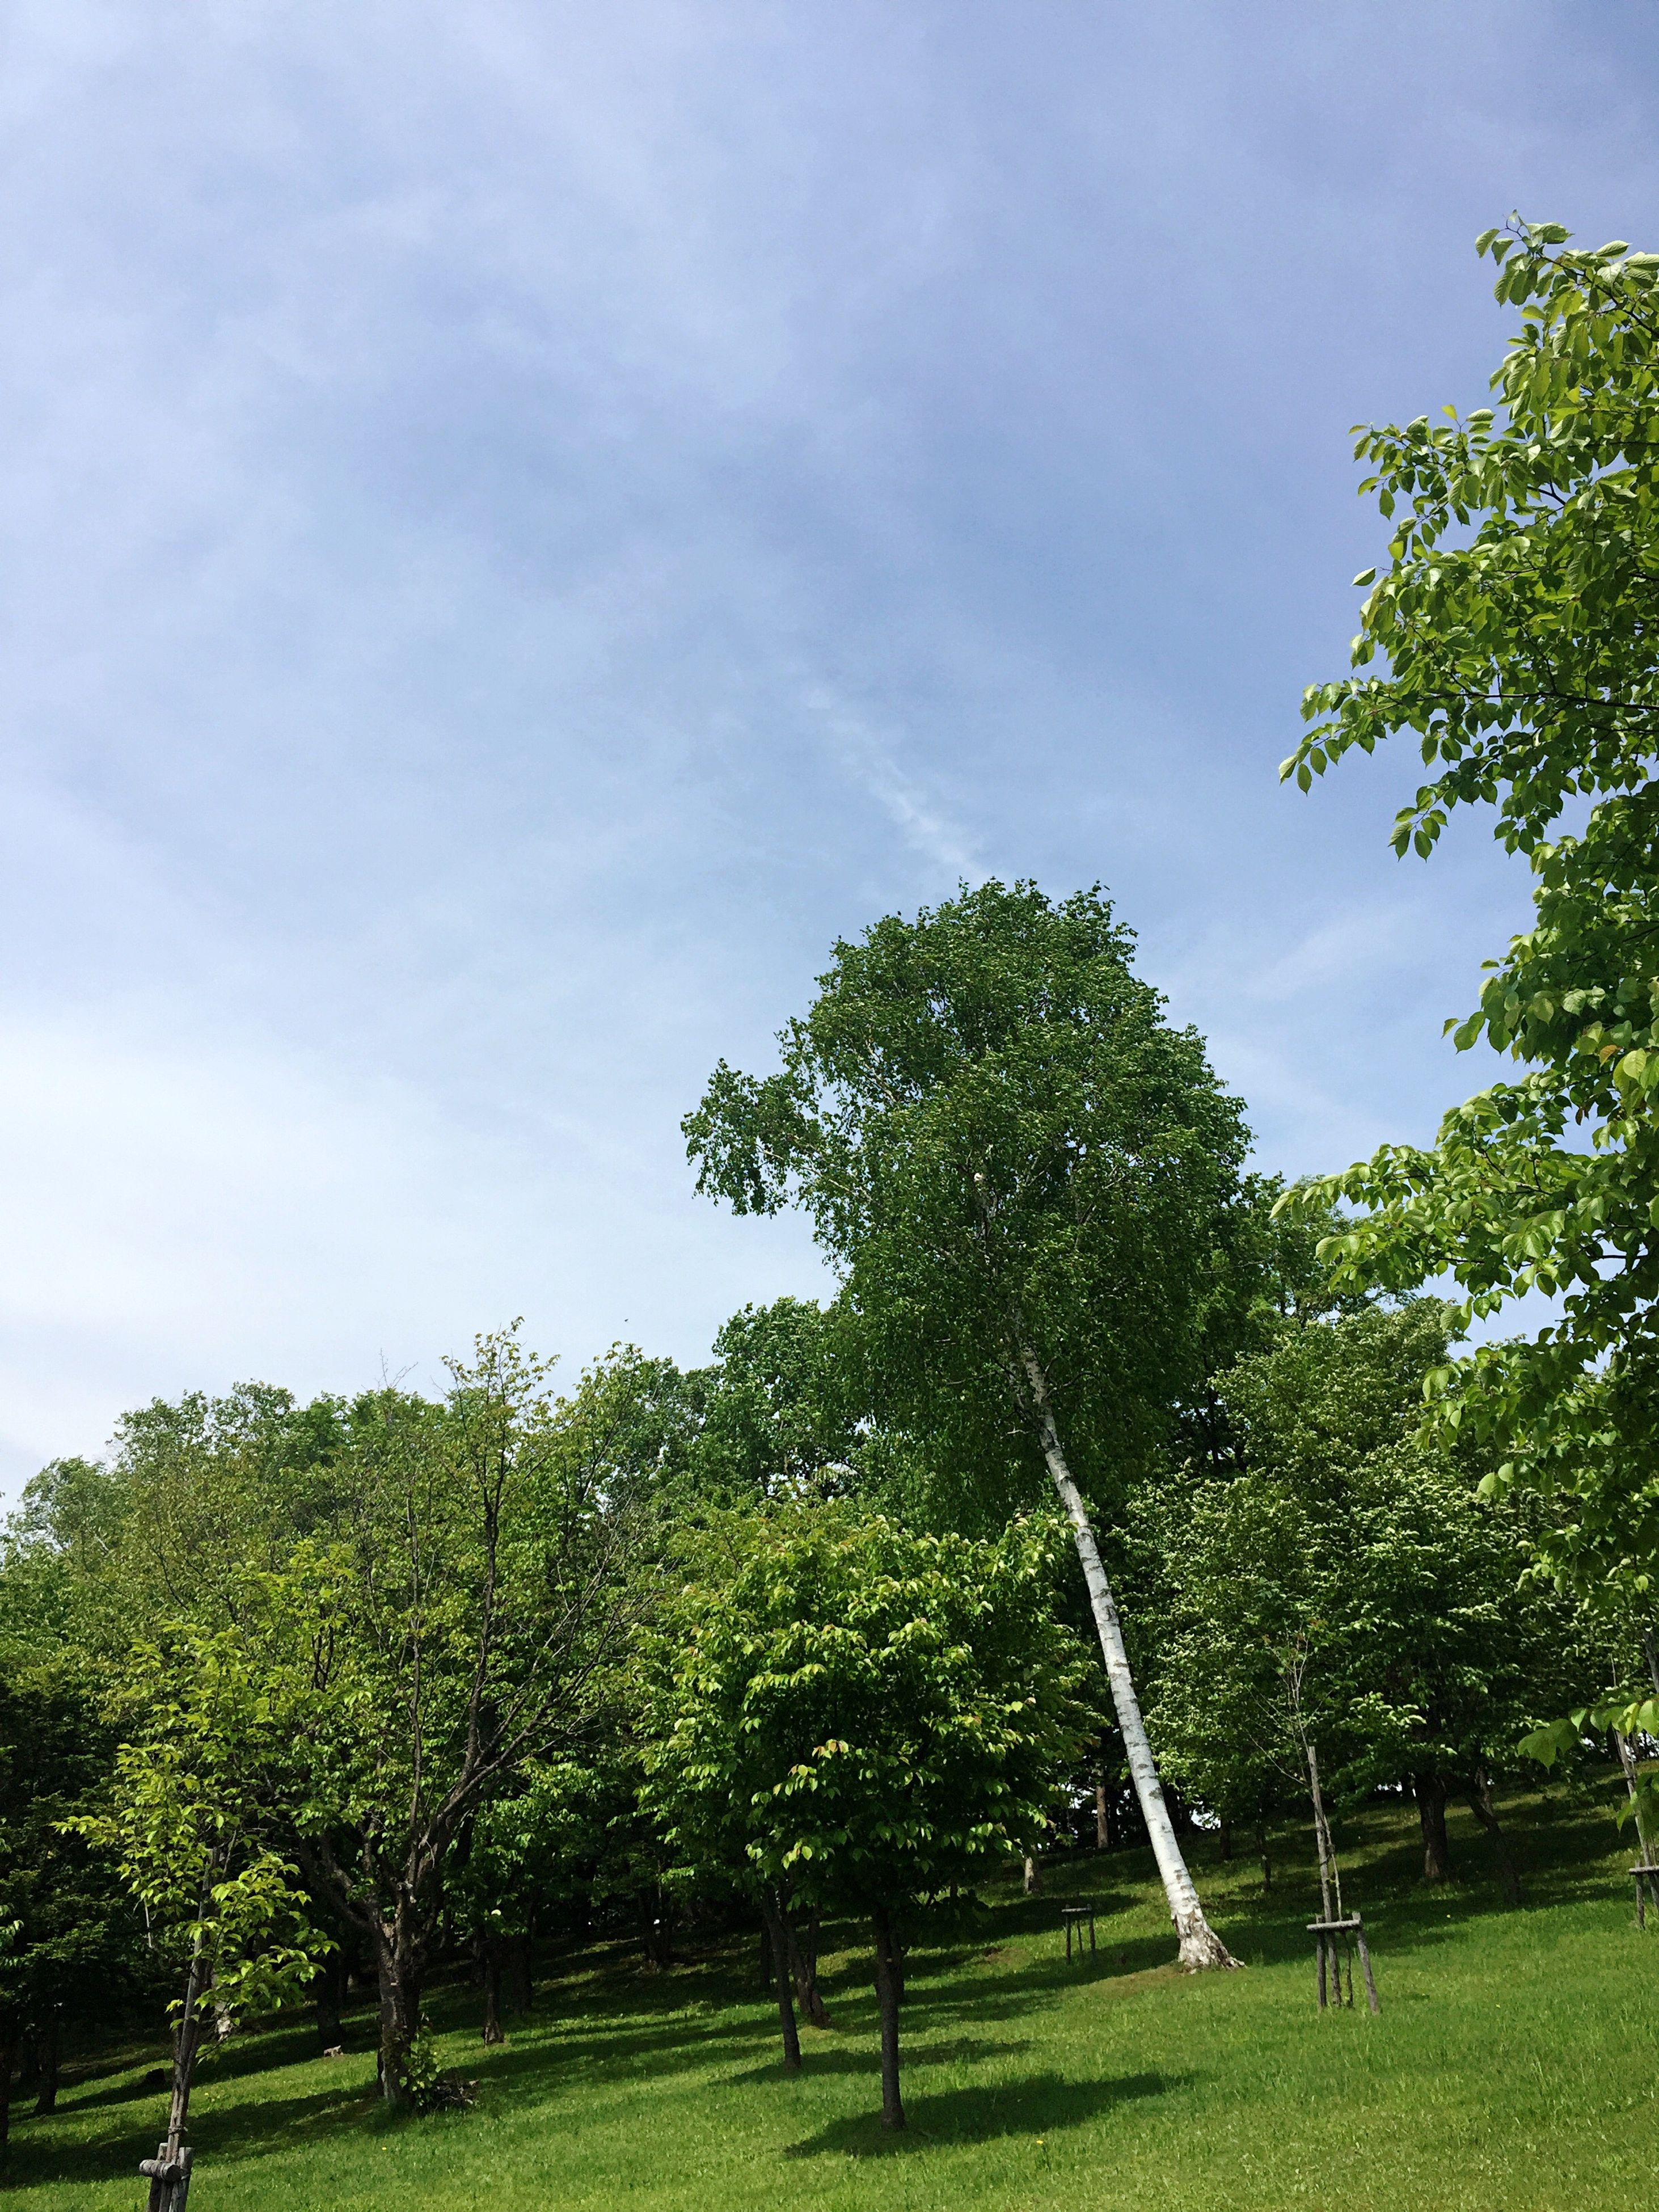 tree, growth, green color, nature, sky, beauty in nature, tranquility, no people, day, tranquil scene, cloud - sky, branch, low angle view, outdoors, scenics, grass